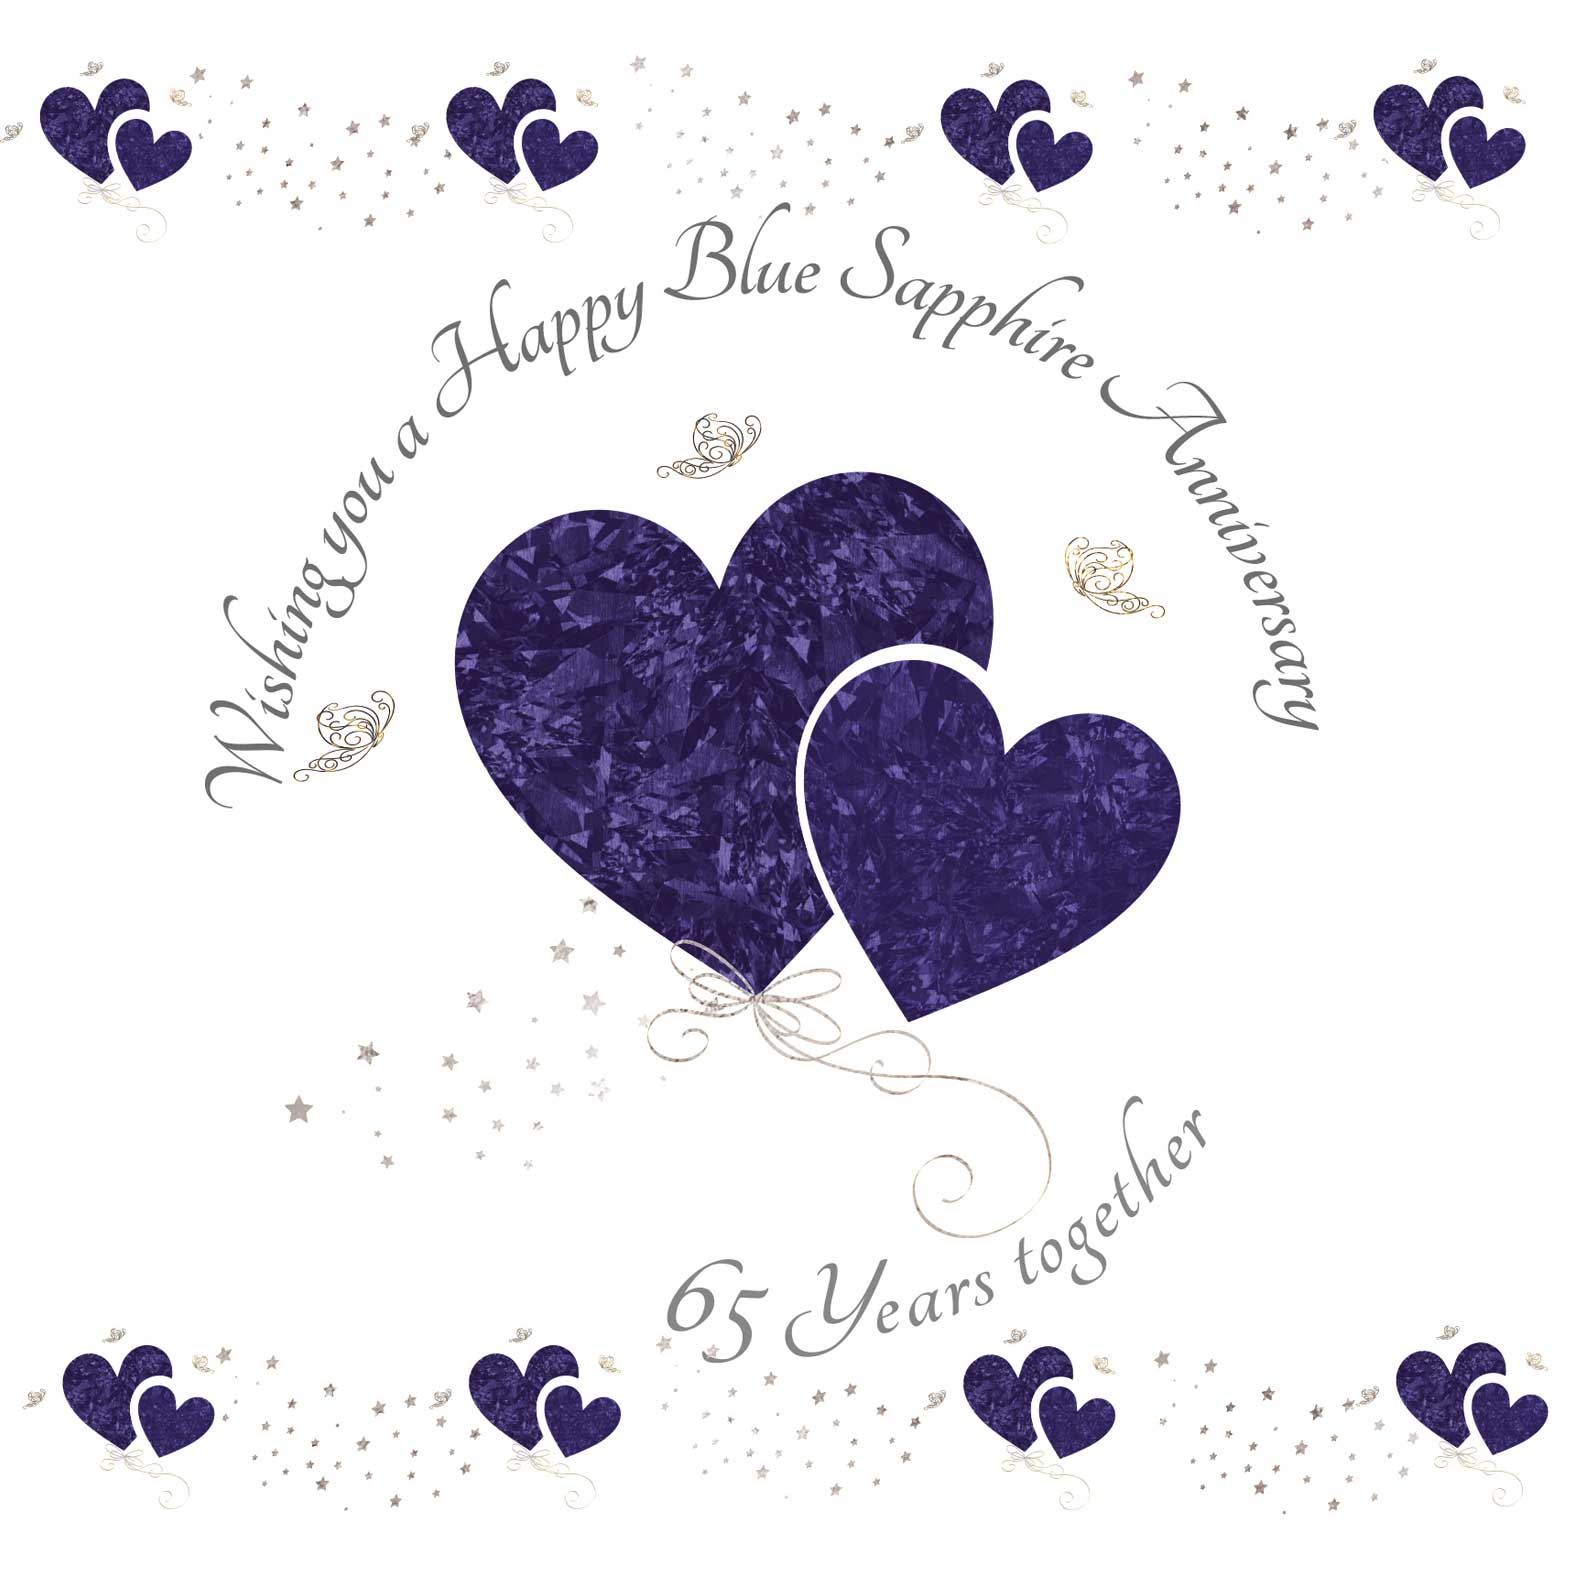 Wishing you a Happy Blue Sapphire Anniversary Greeting Card